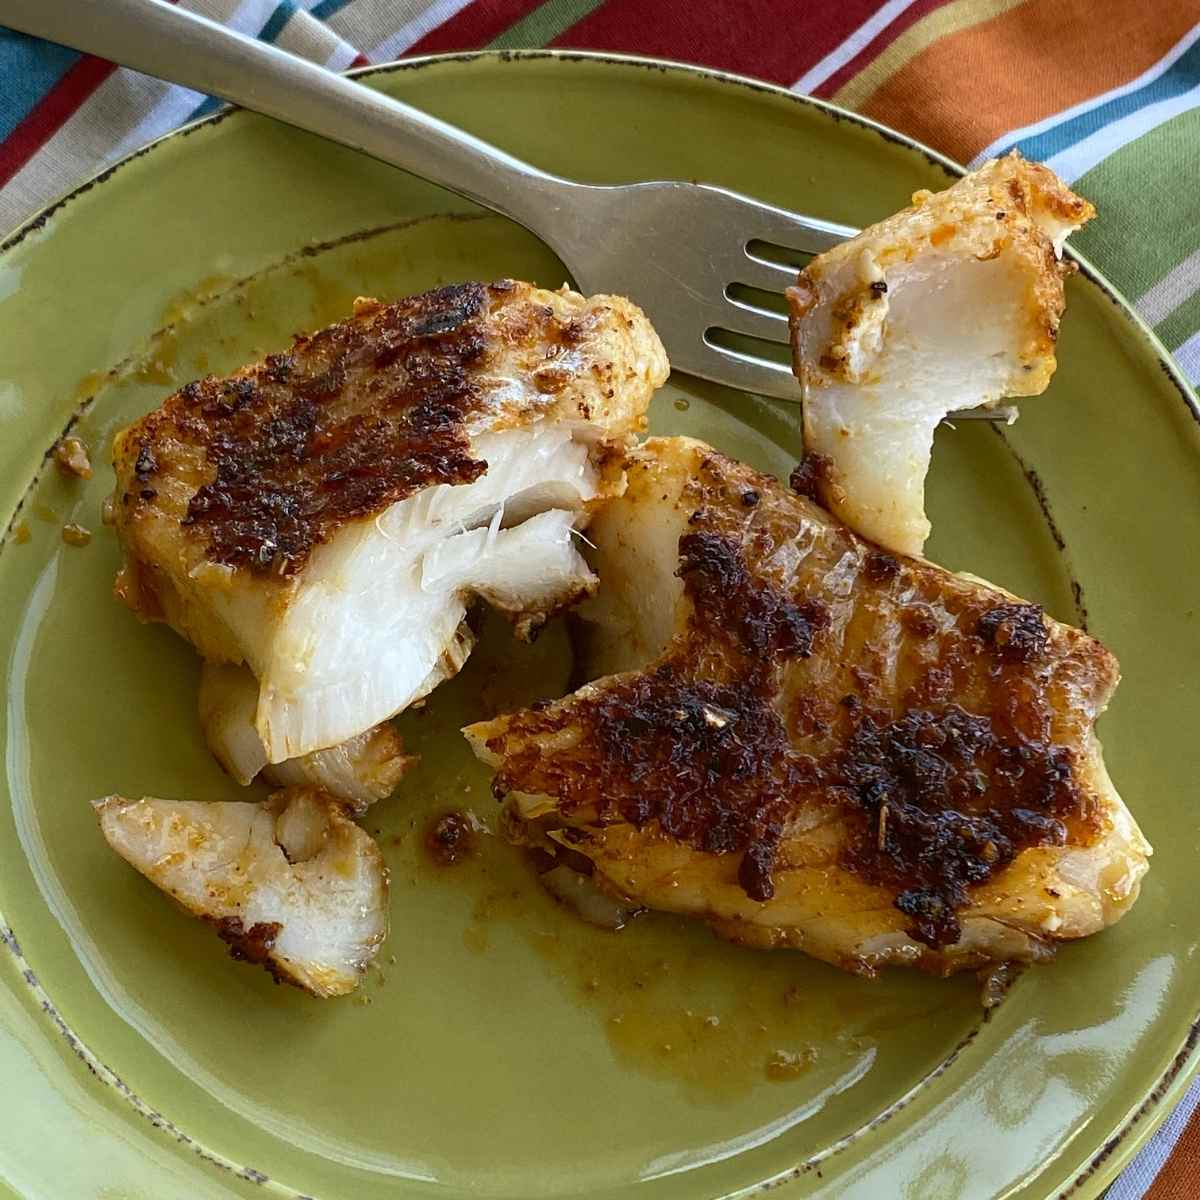 Blackened cod fish fillet on a plate with fork holding a bite to see white flaky flesh.